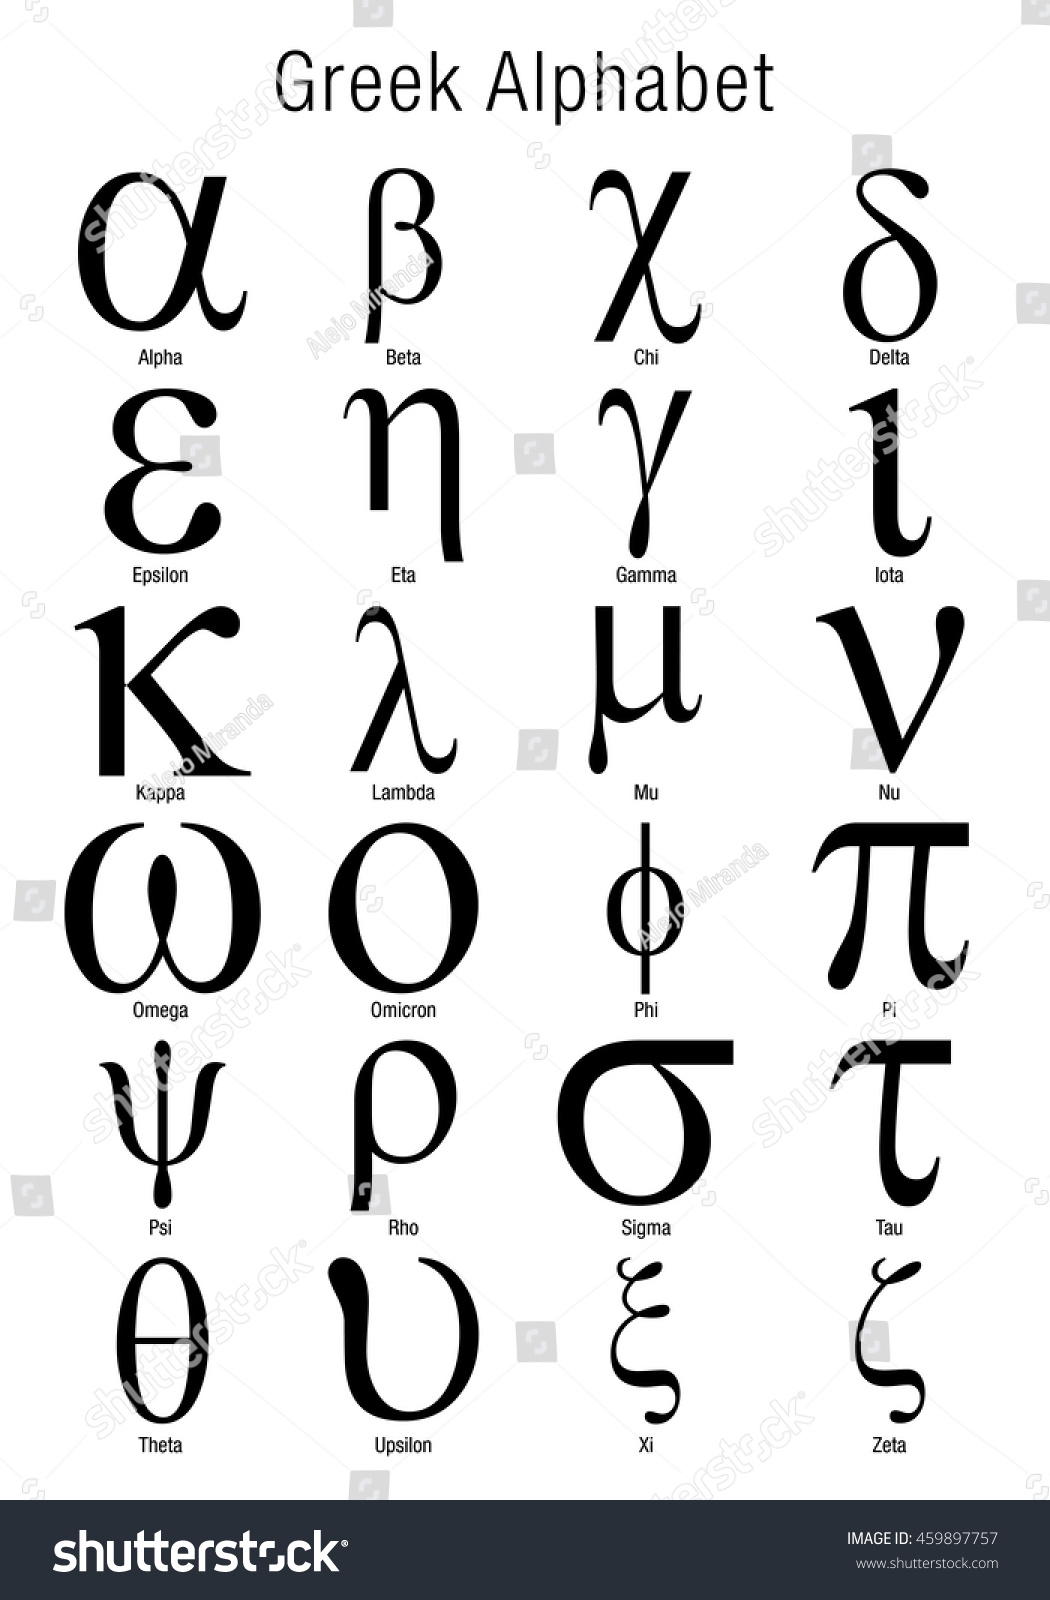 English To Greek Alphabet